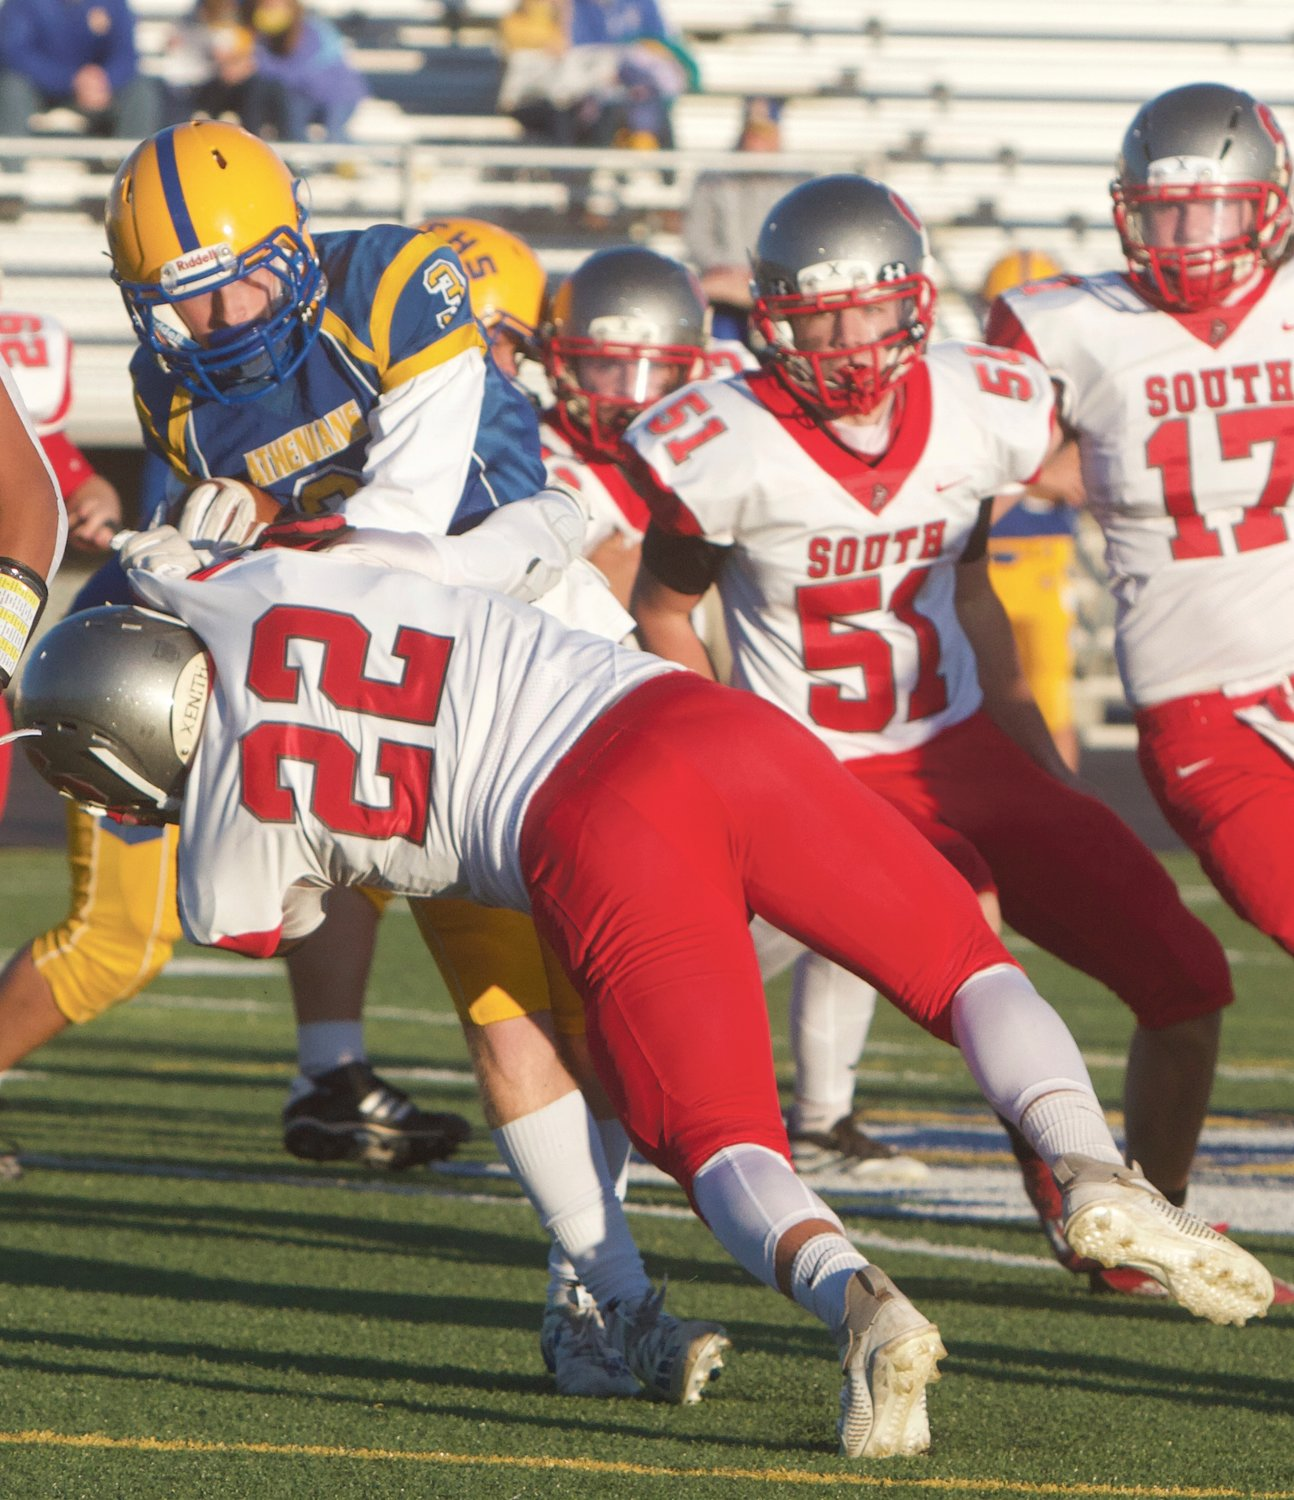 Southmont's Wyatt Woodall makes a diving tackle against Crawfordsville.